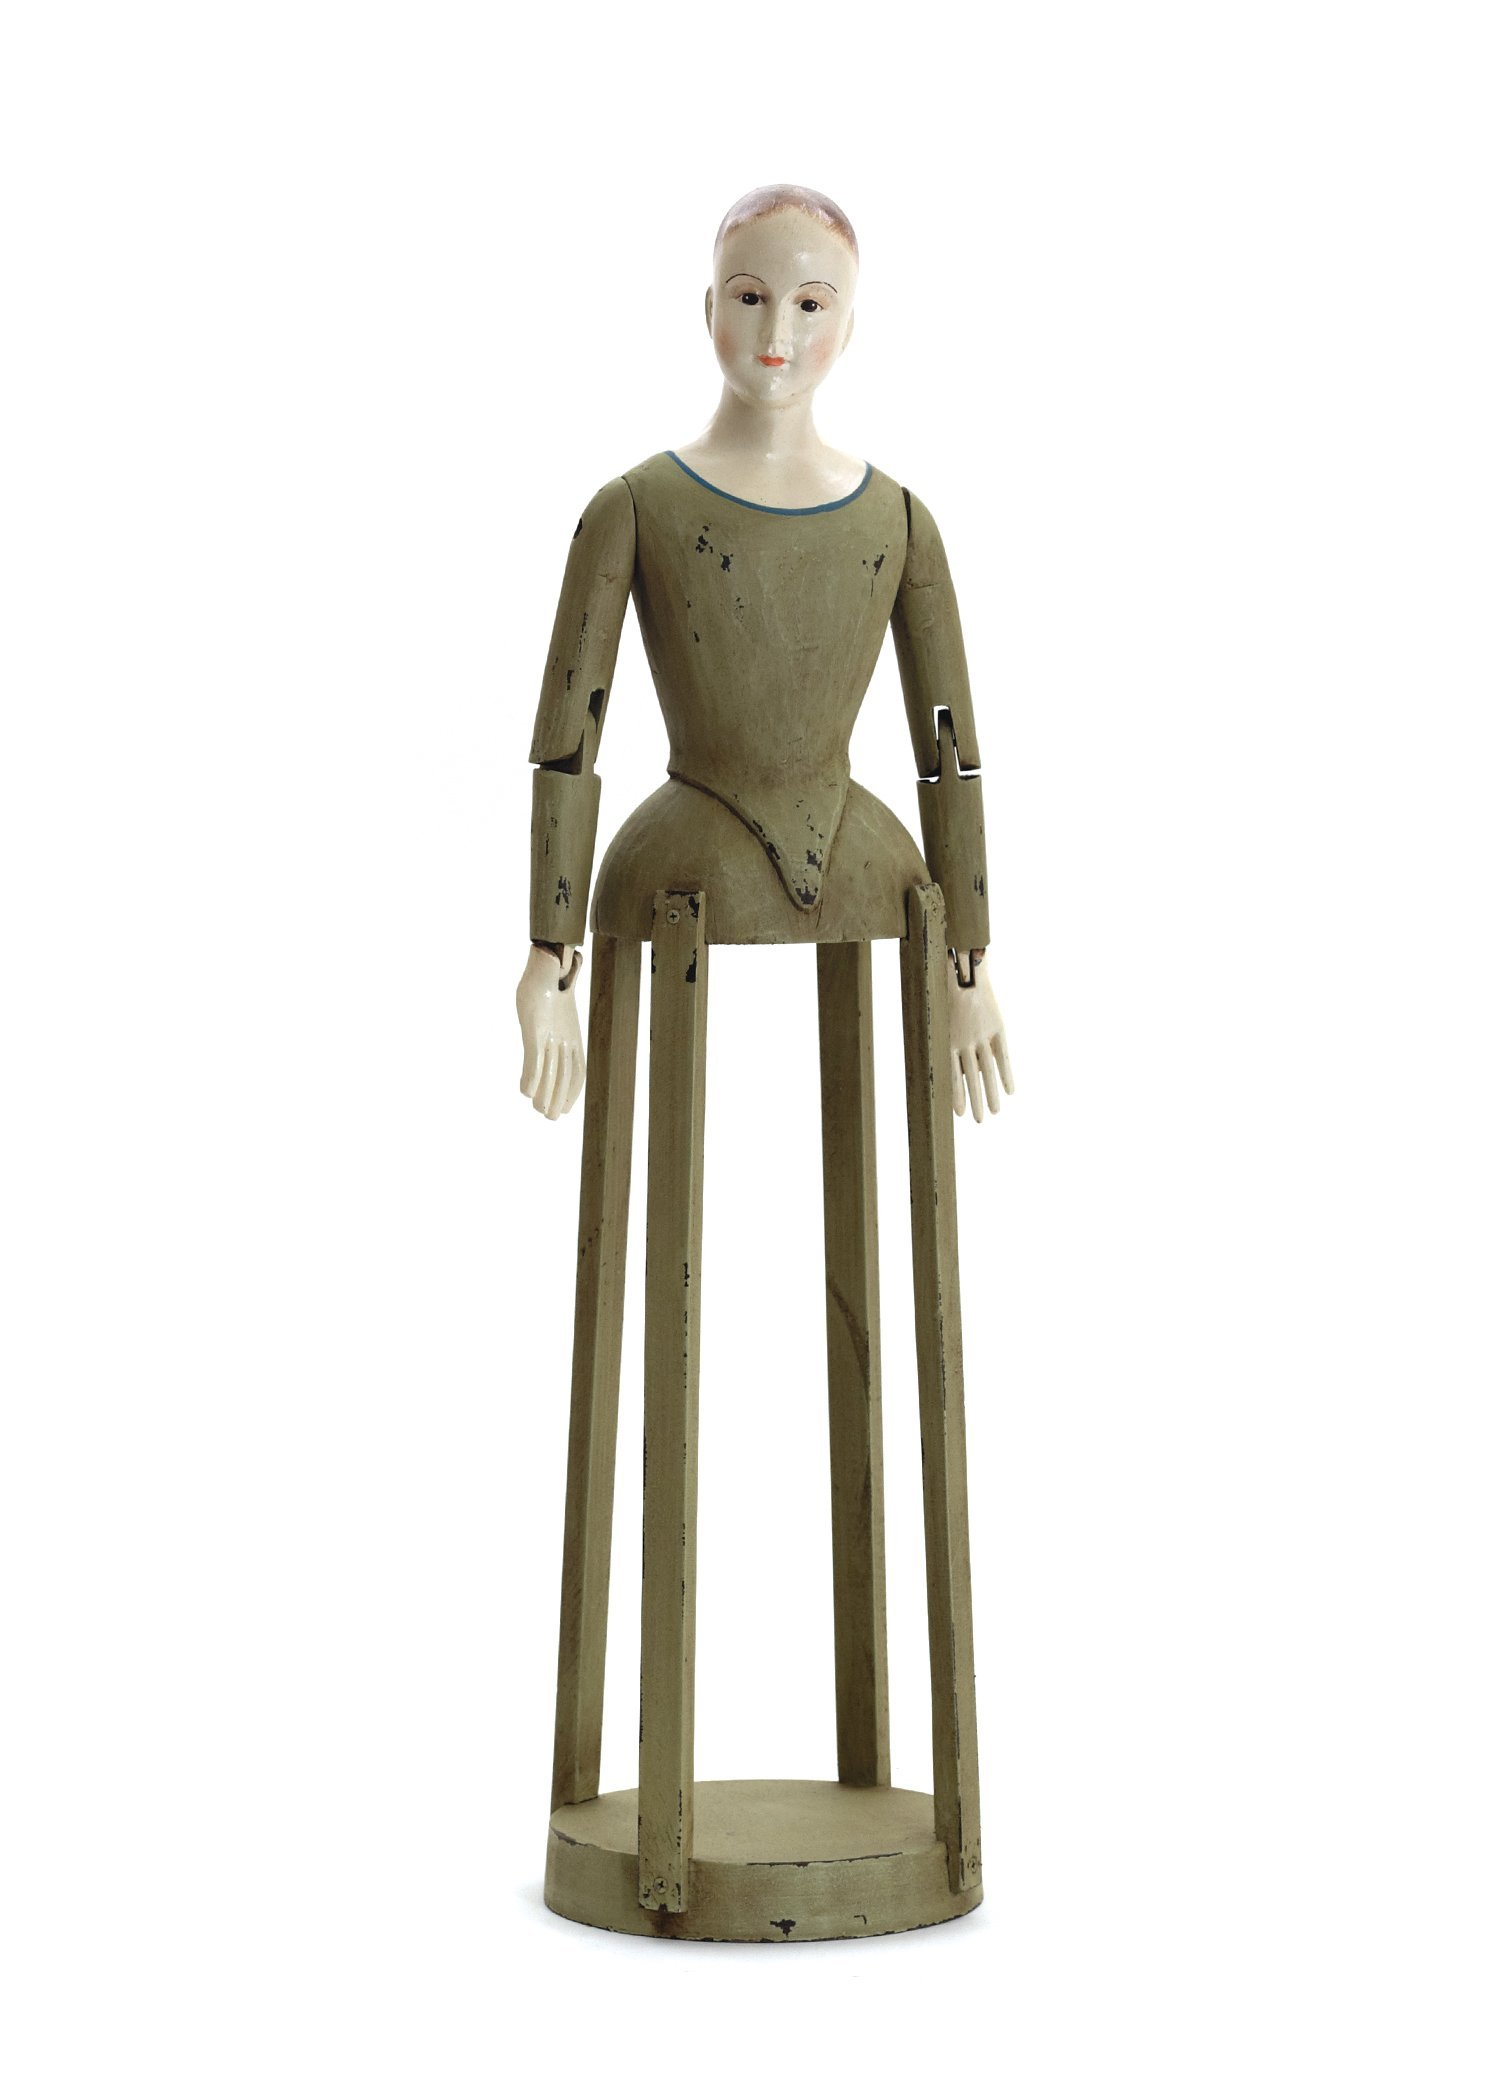 Armour Manikin by Halt Decor